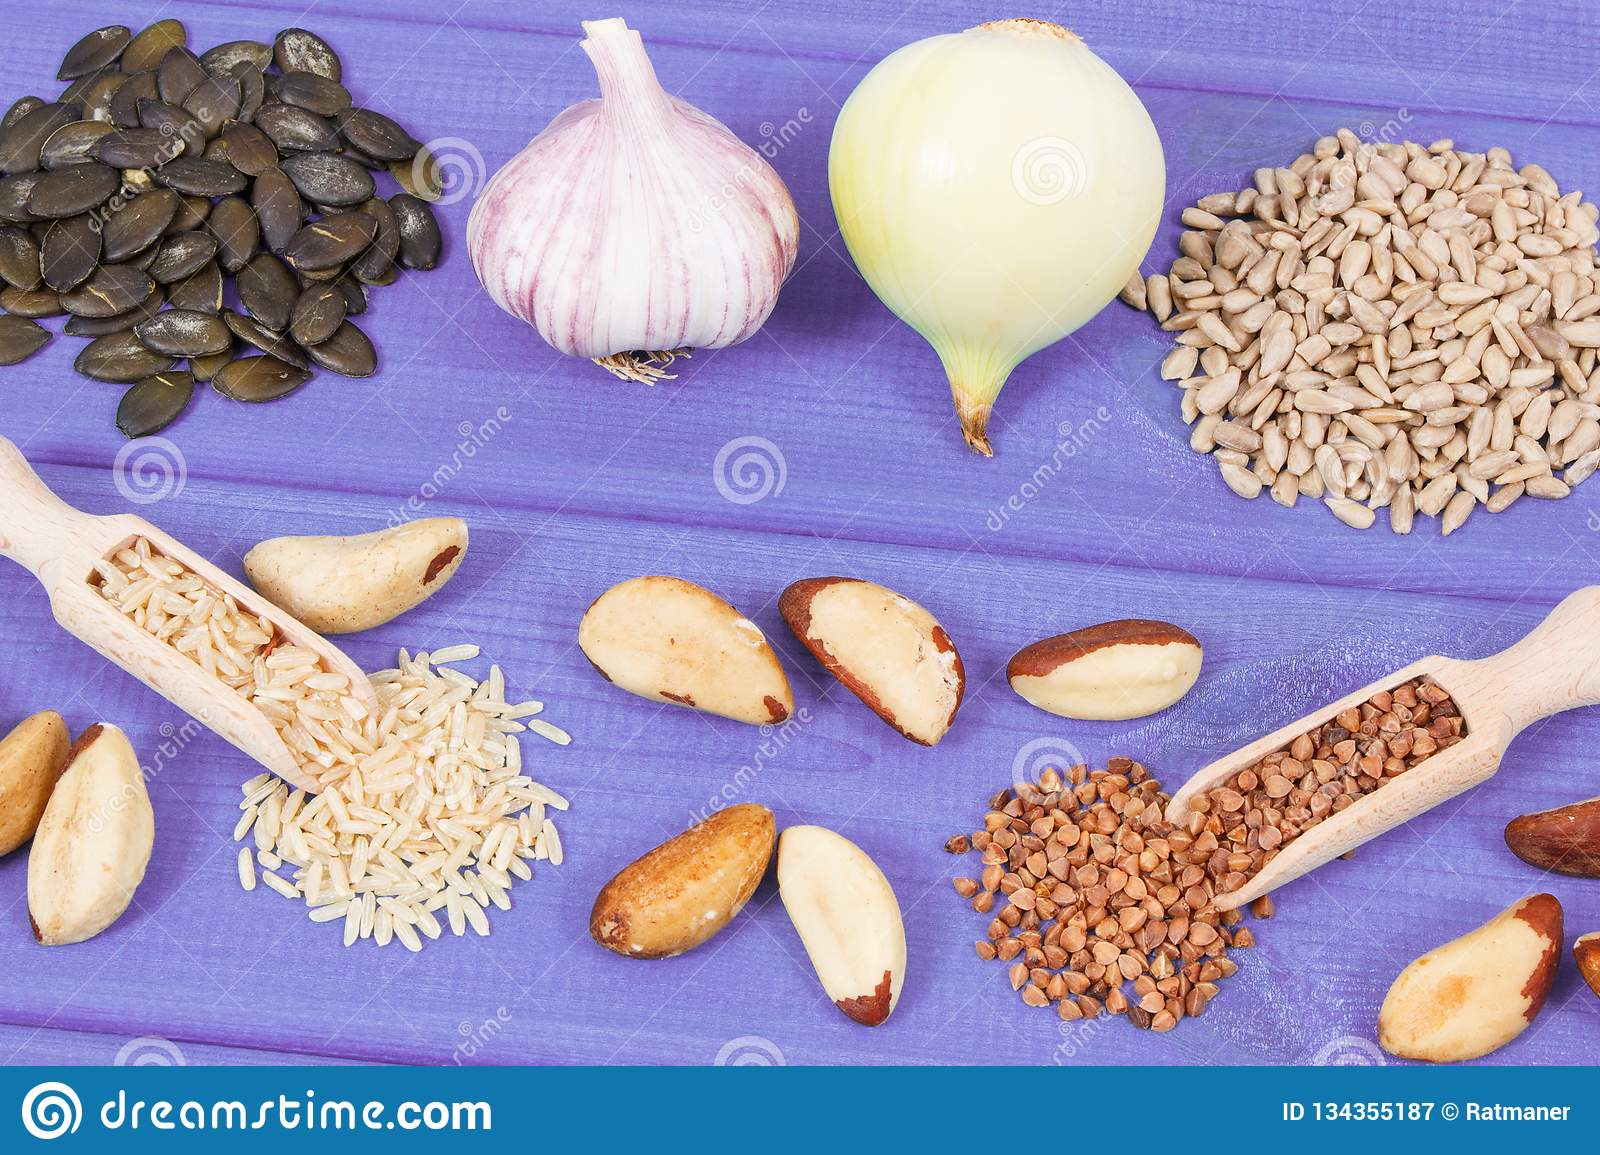 Food containing selenium, minerals and dietary fiber, healthy nutrition concept